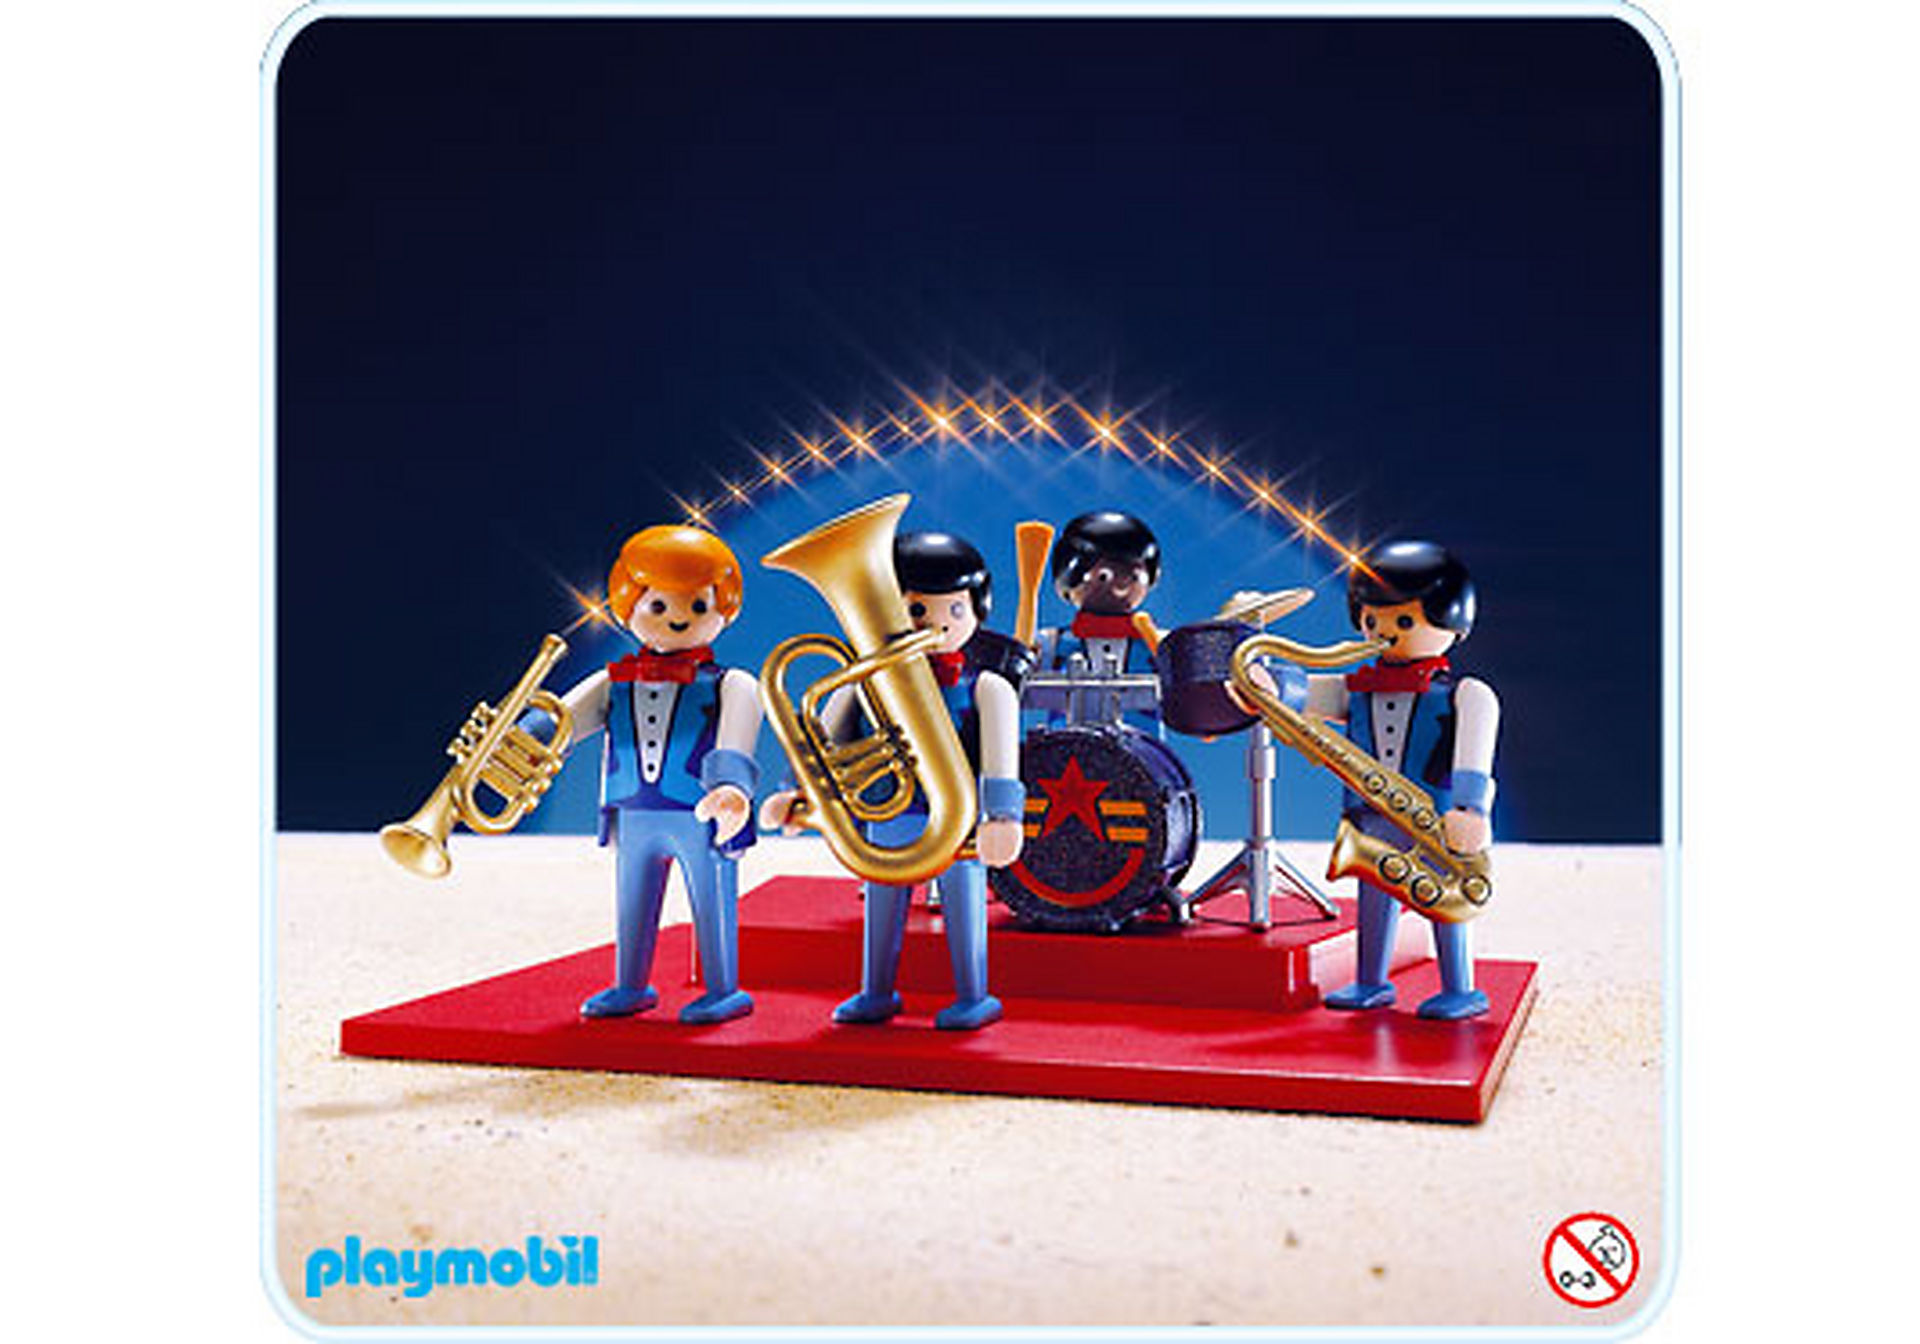 http://media.playmobil.com/i/playmobil/3723-A_product_detail/Musik-Kapelle